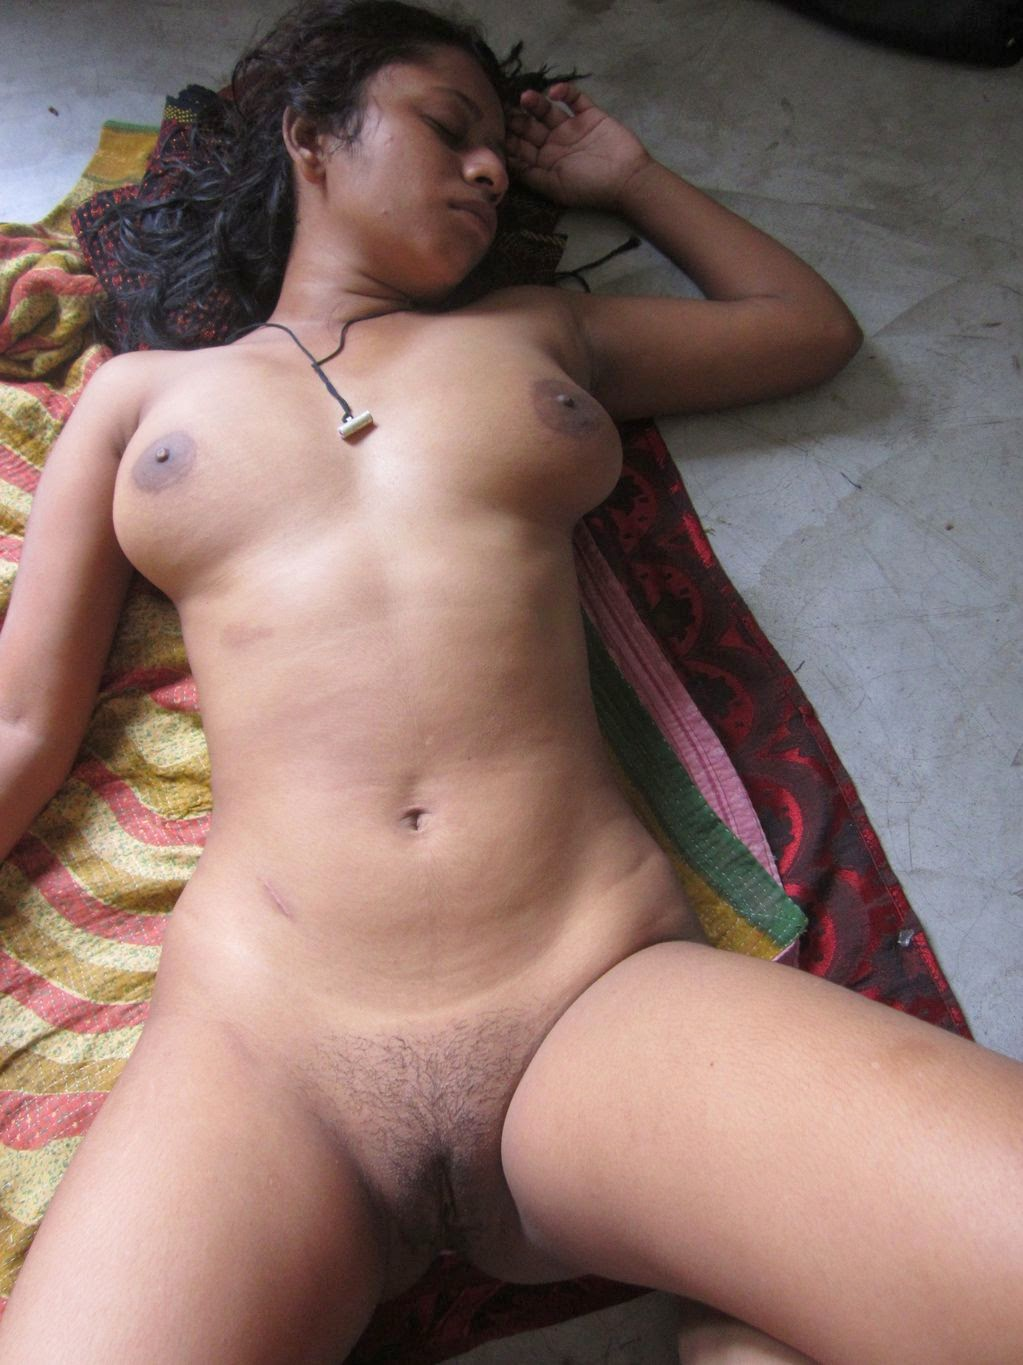 pakistanpenis pics old man with girl gallry